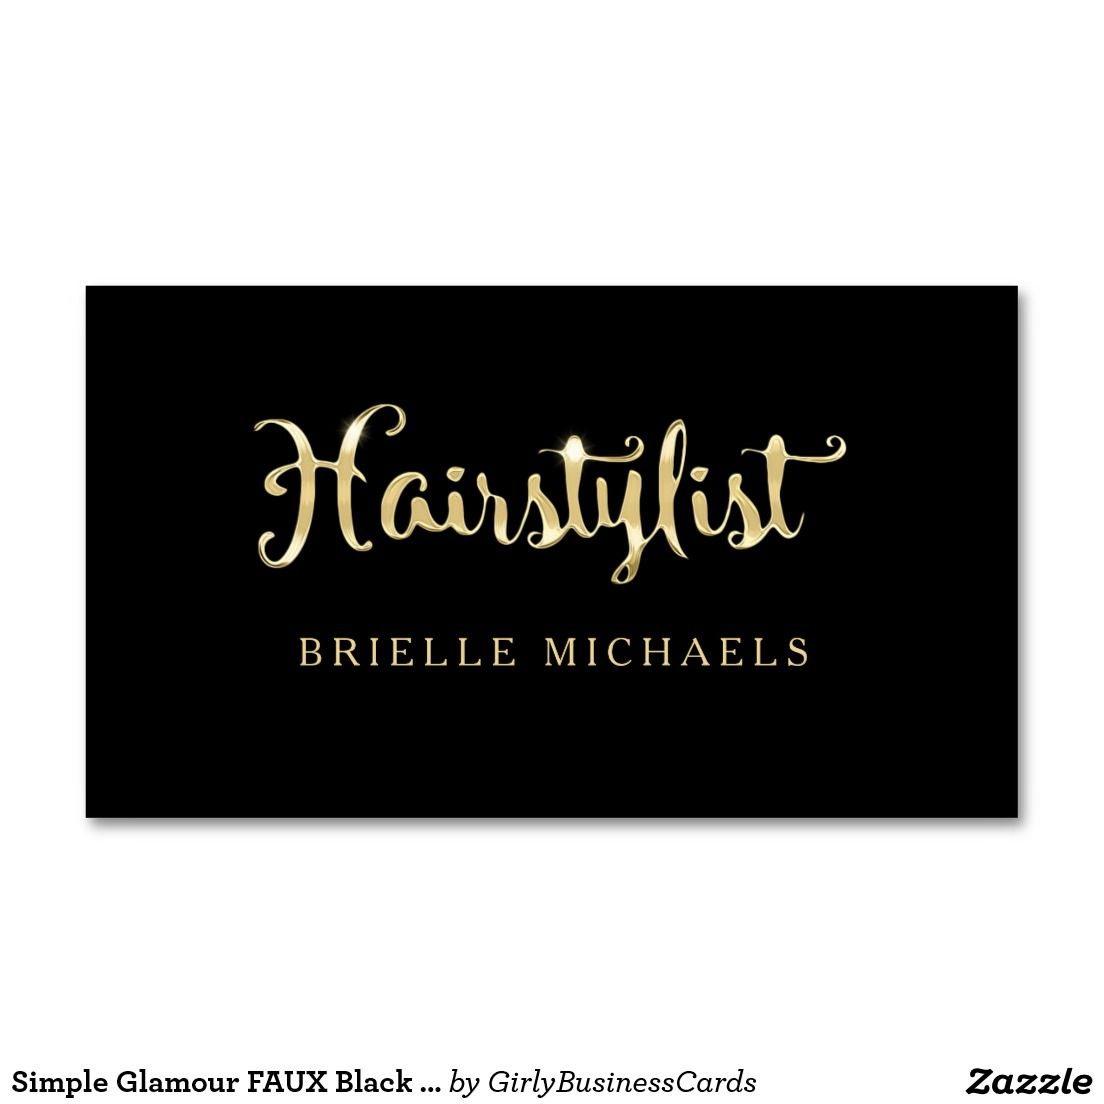 Simple Glamour FAUX Black and Gold Hairstylist Business Card ...